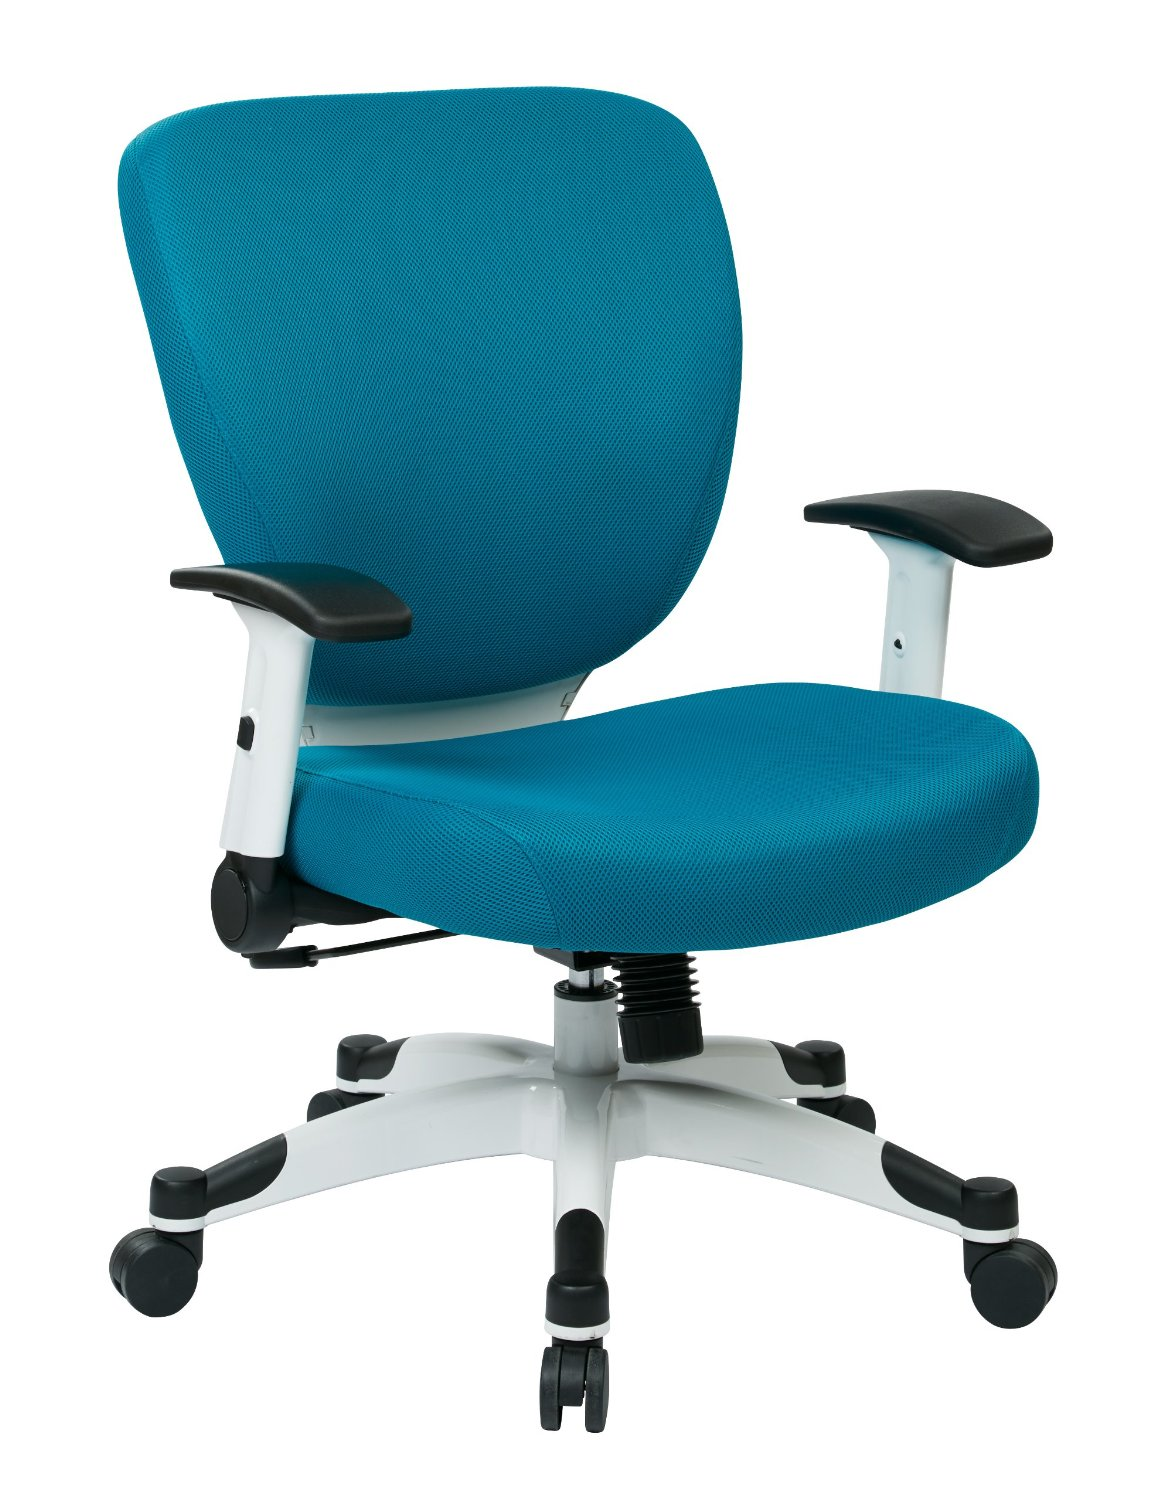 desk chair blue design app office task chairs for